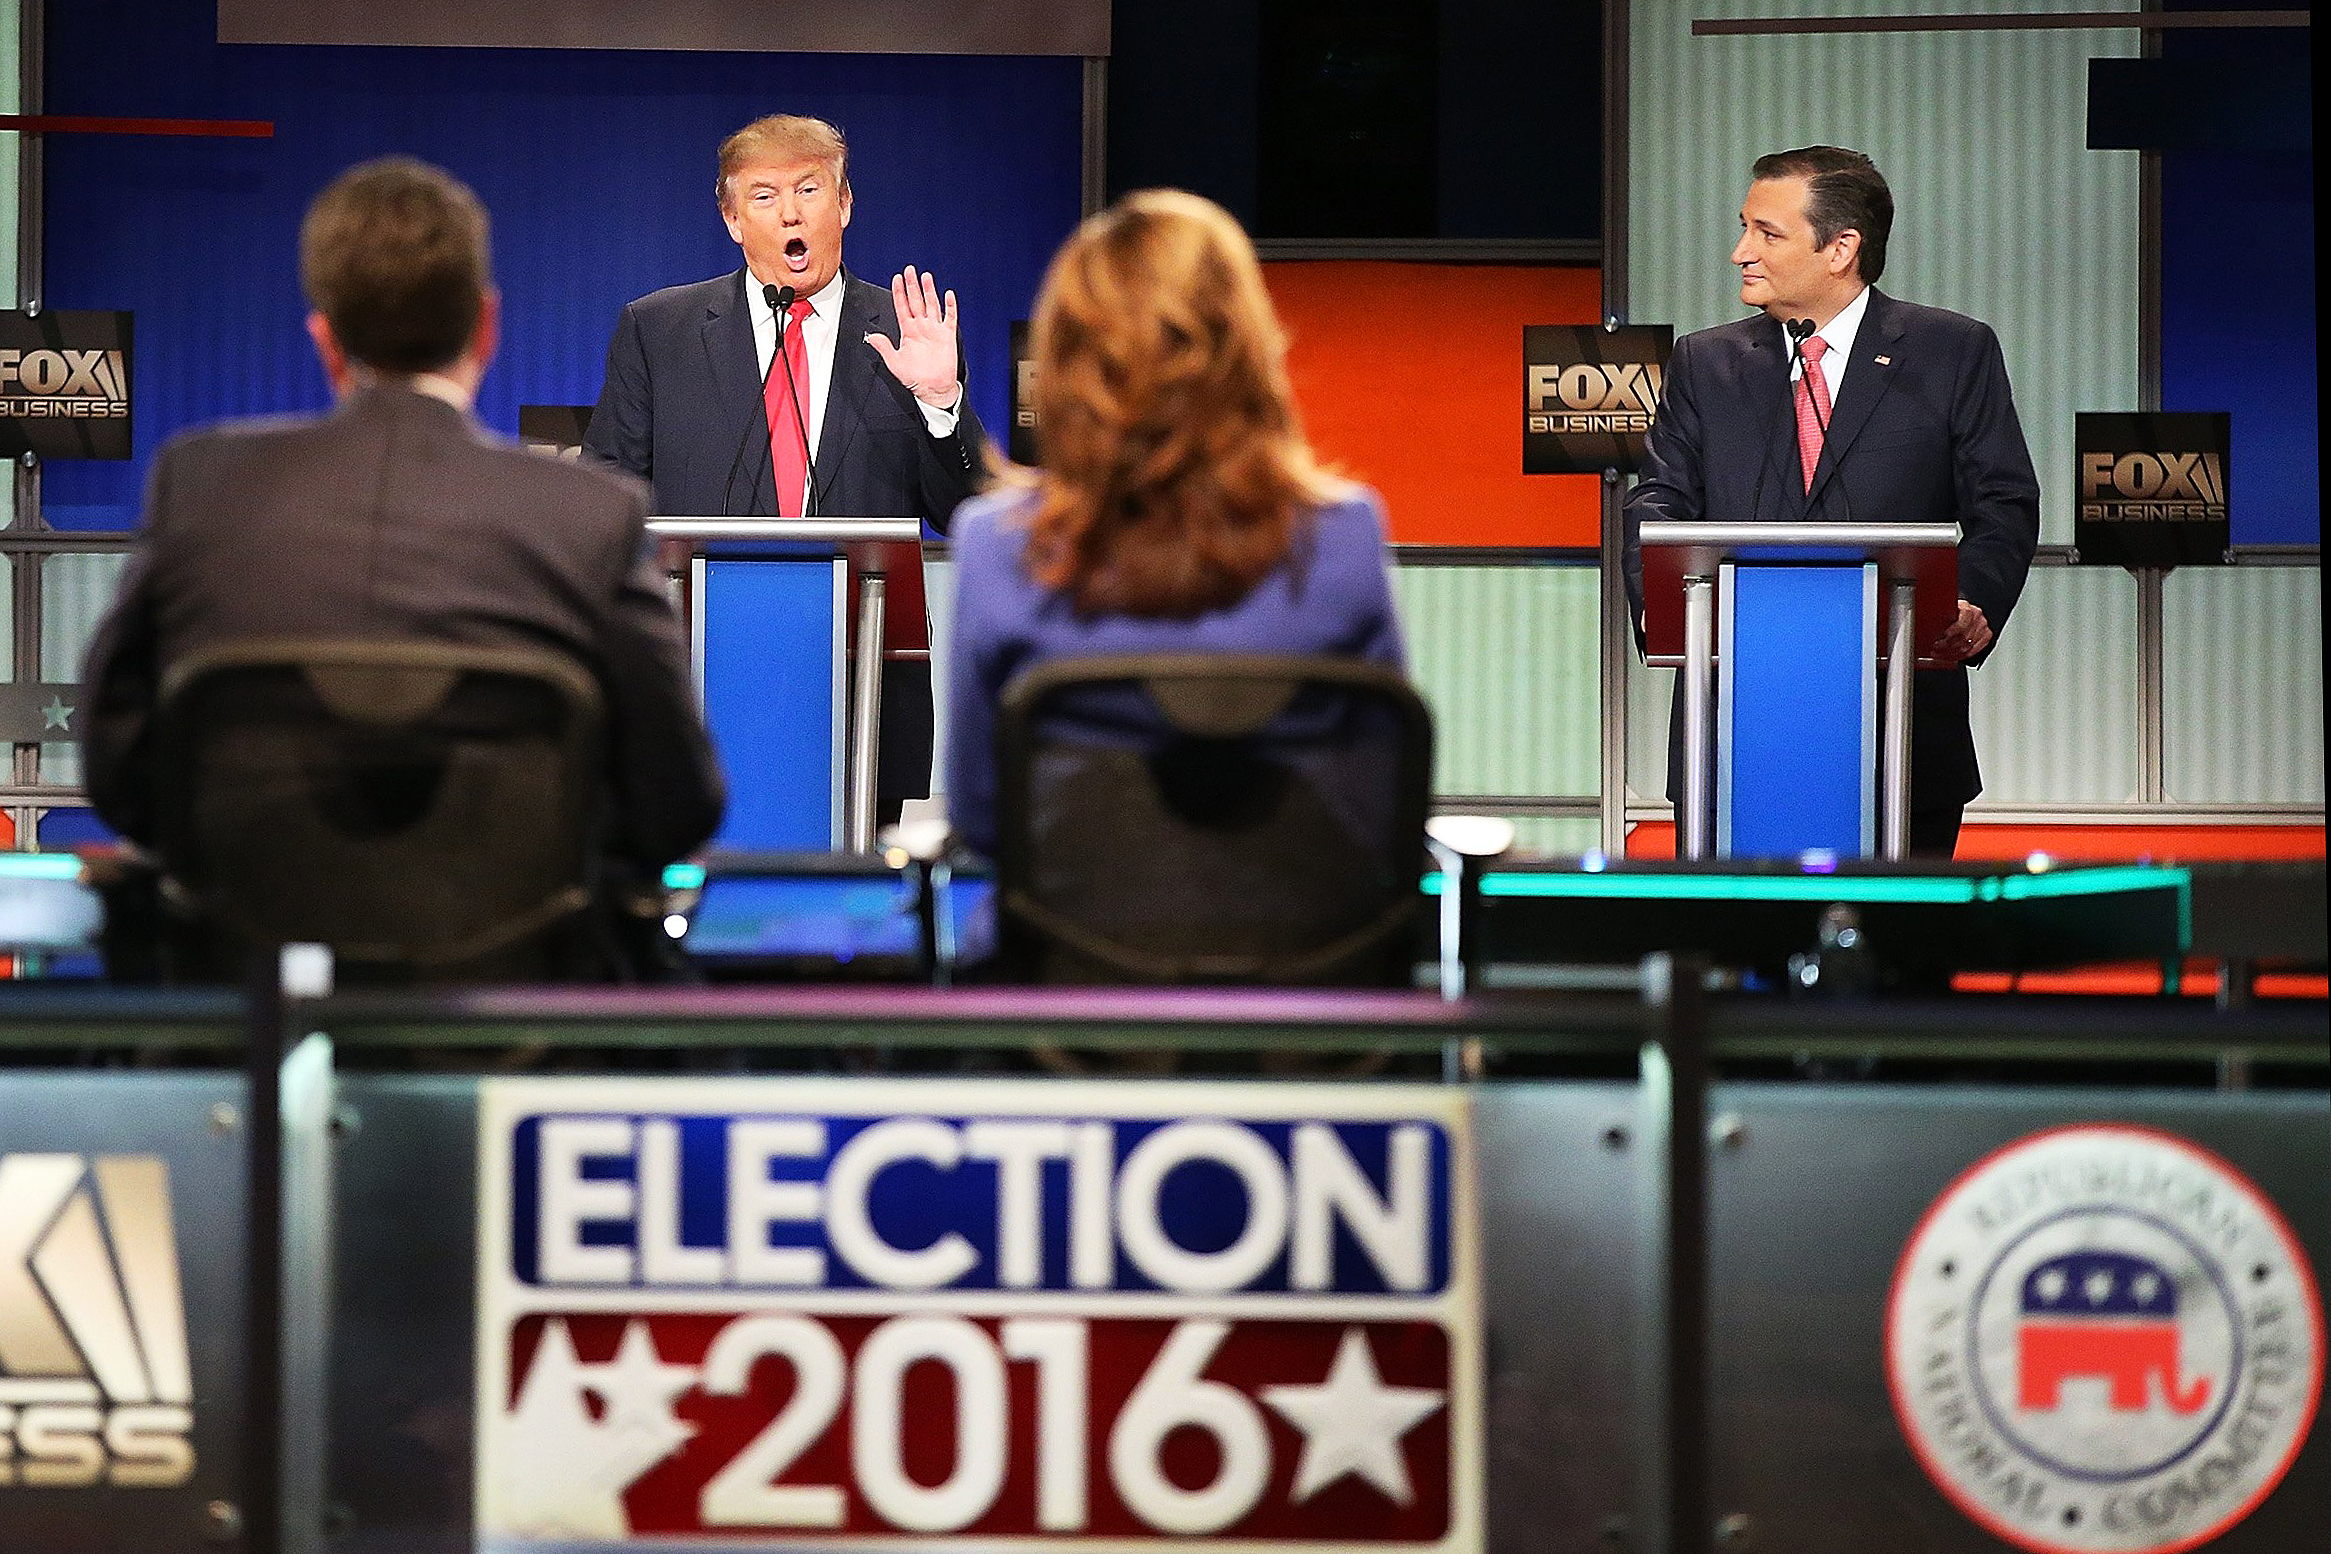 Republican presidential candidates Donald Trump and Sen. Ted Cruz (R-TX) participate in the Republican presidential debate at the North Charleston Coliseum and Performing Arts Center on Jan. 14, 2016 in North Charleston, S.C.